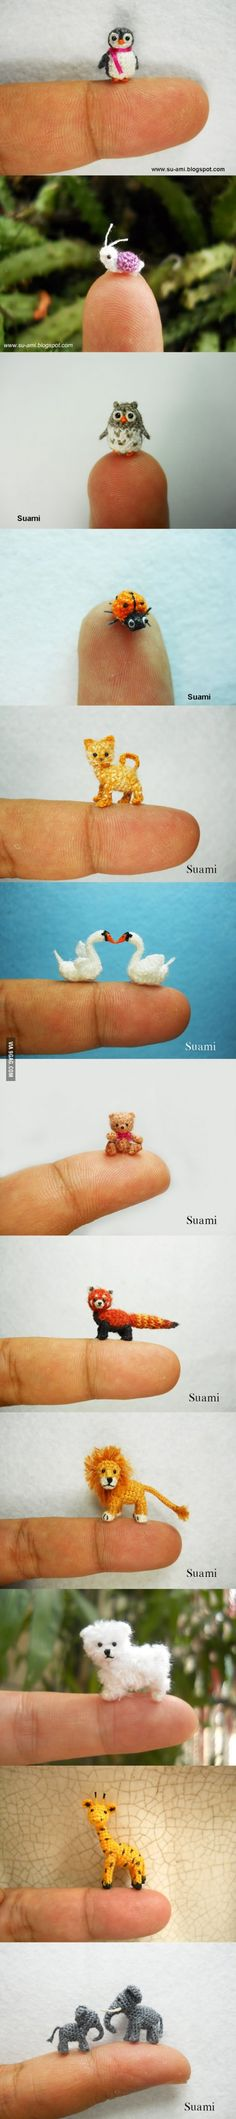 Tiny animals by Suami